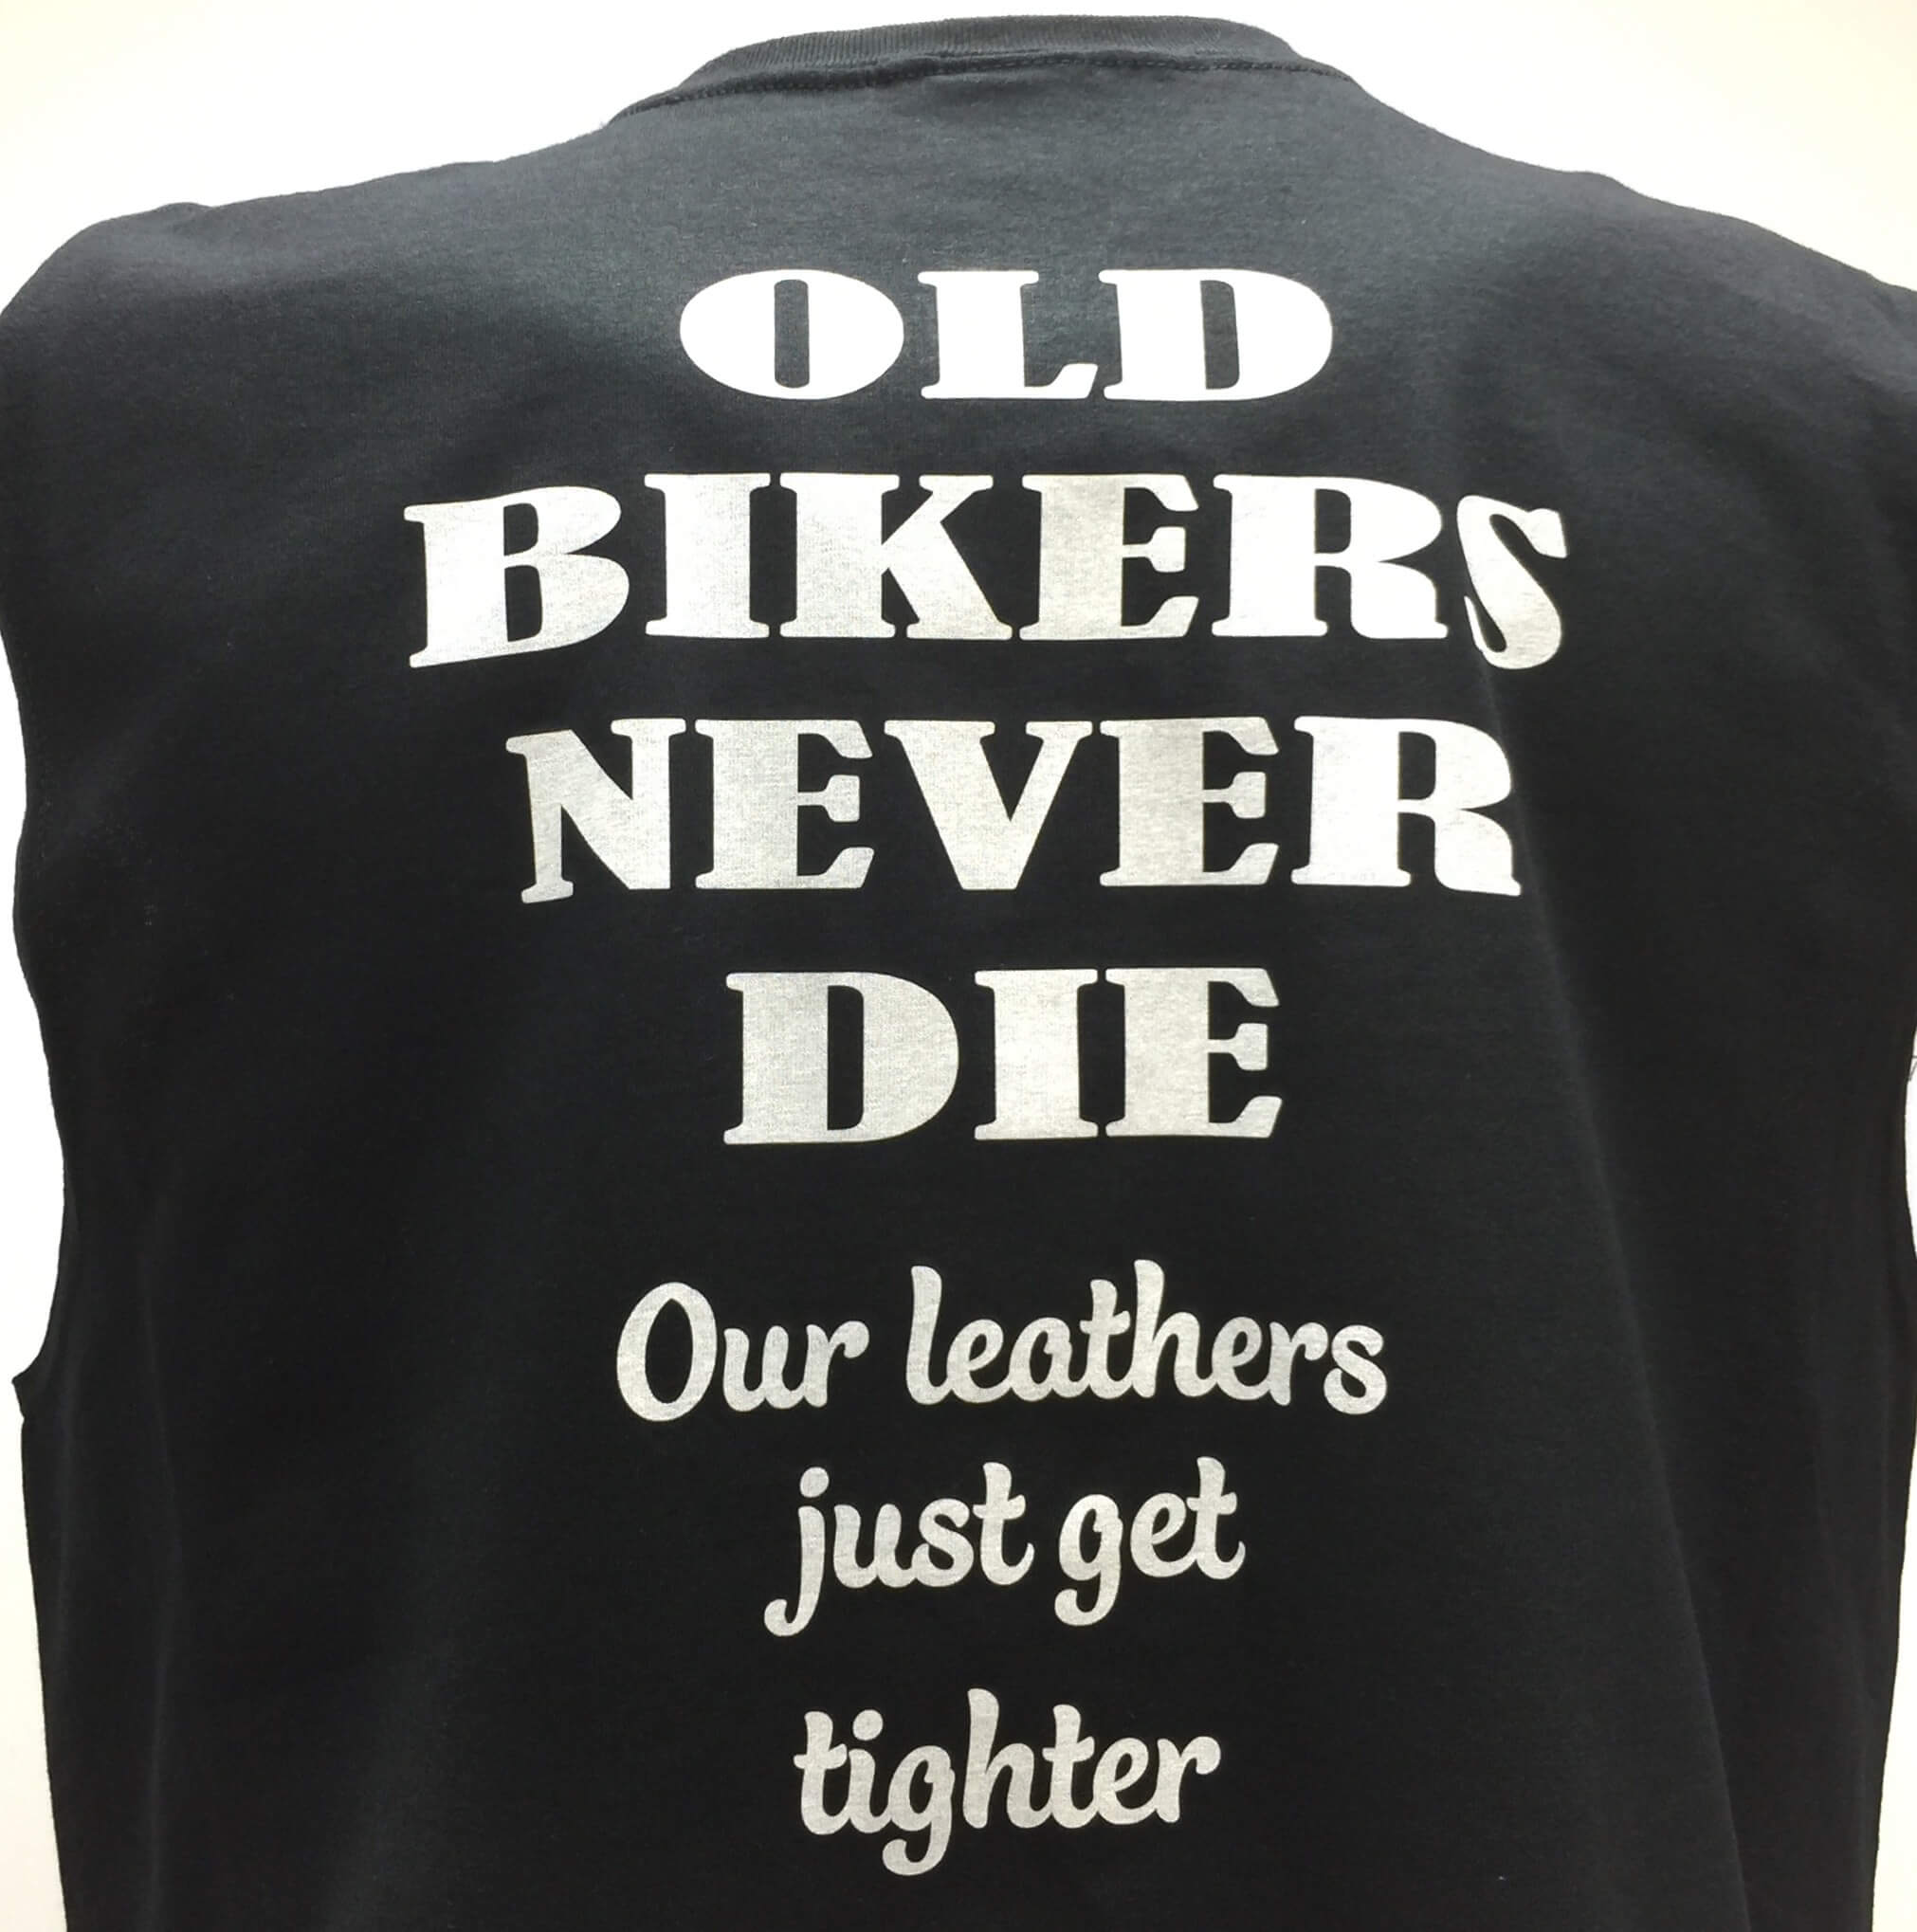 old bikers old-bikers-never-die-our-leathers-just-get-